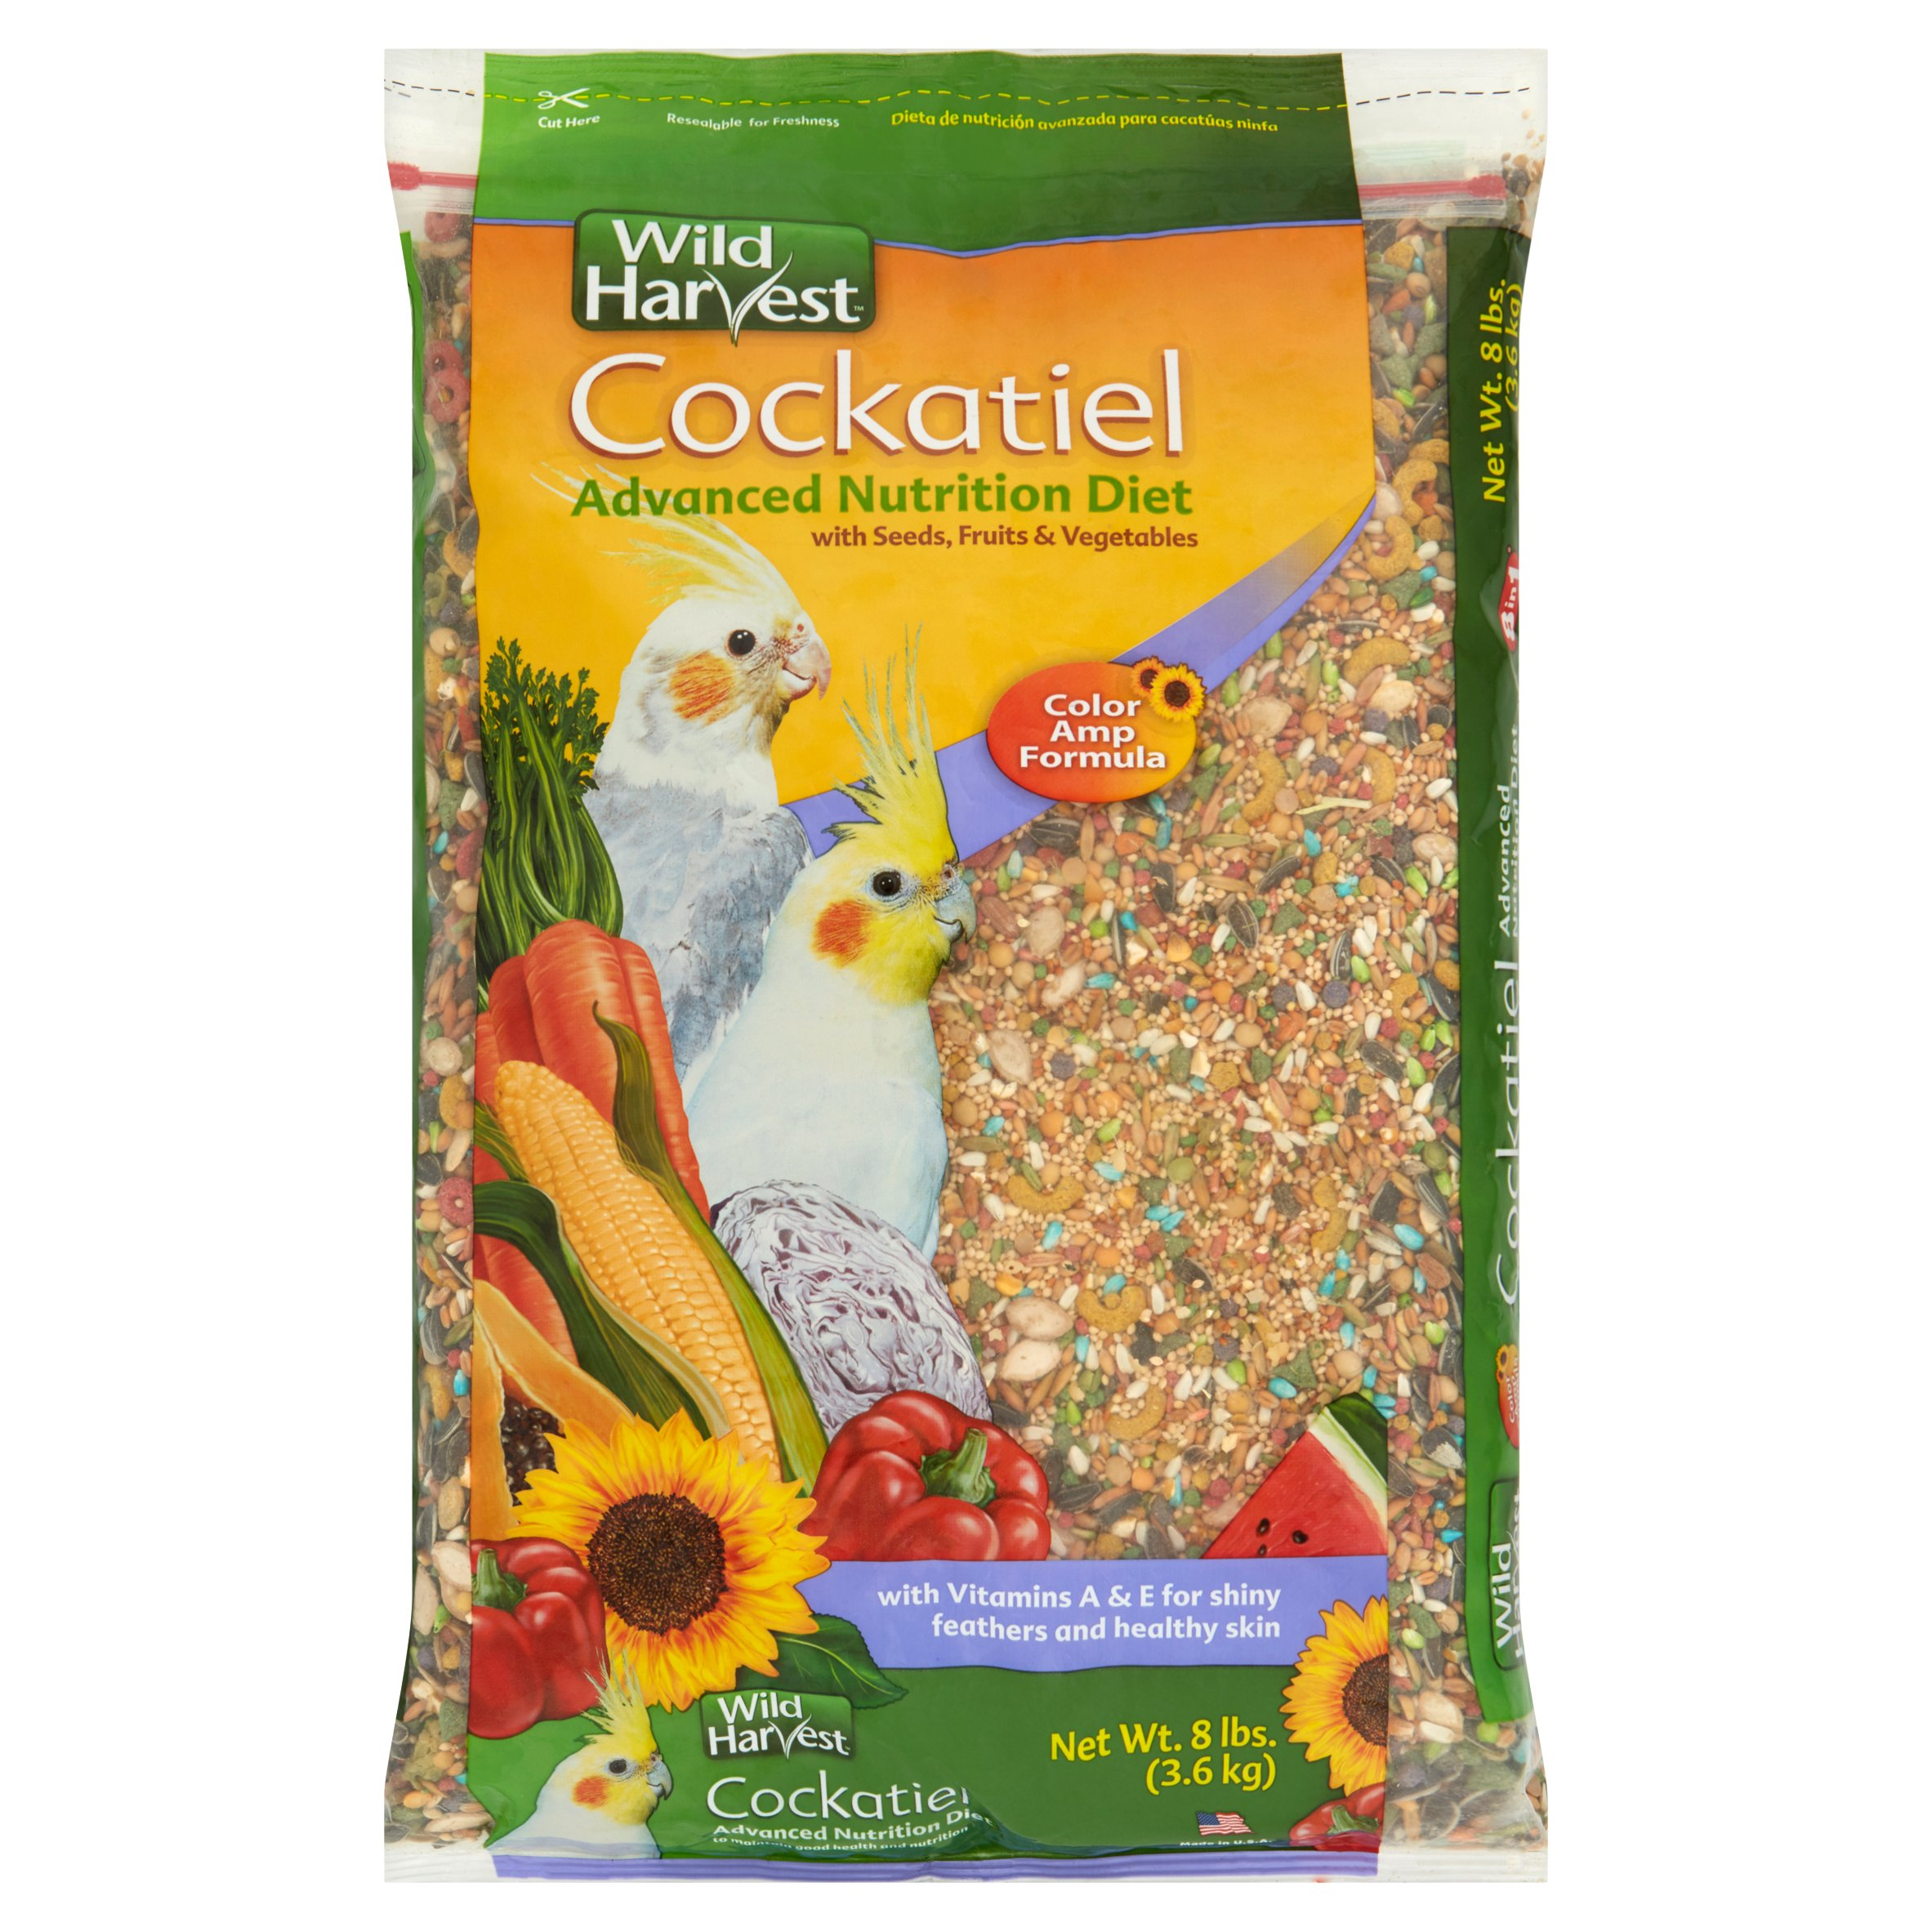 Wild Harvest Cockatiel Advanced Nutrition Diet Blend, 8 lb